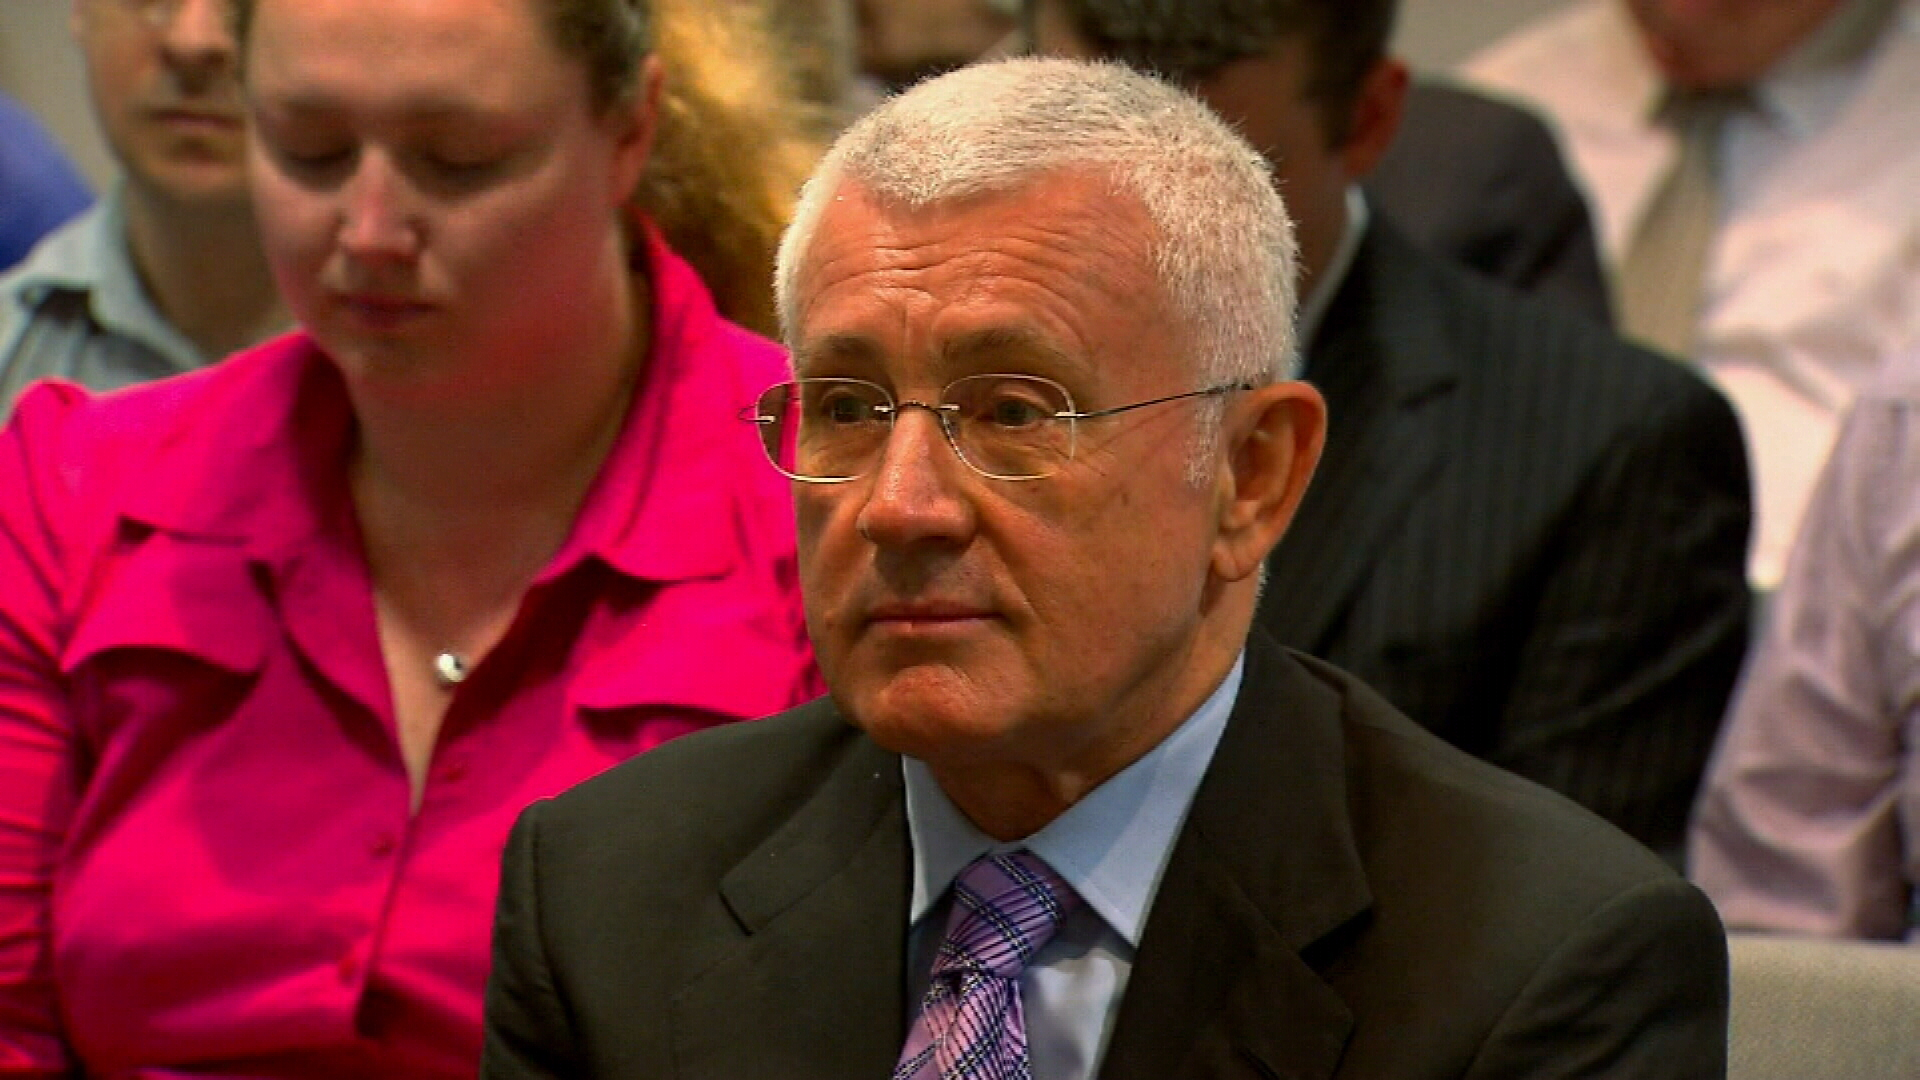 Medich sentenced to a maximum 39 years